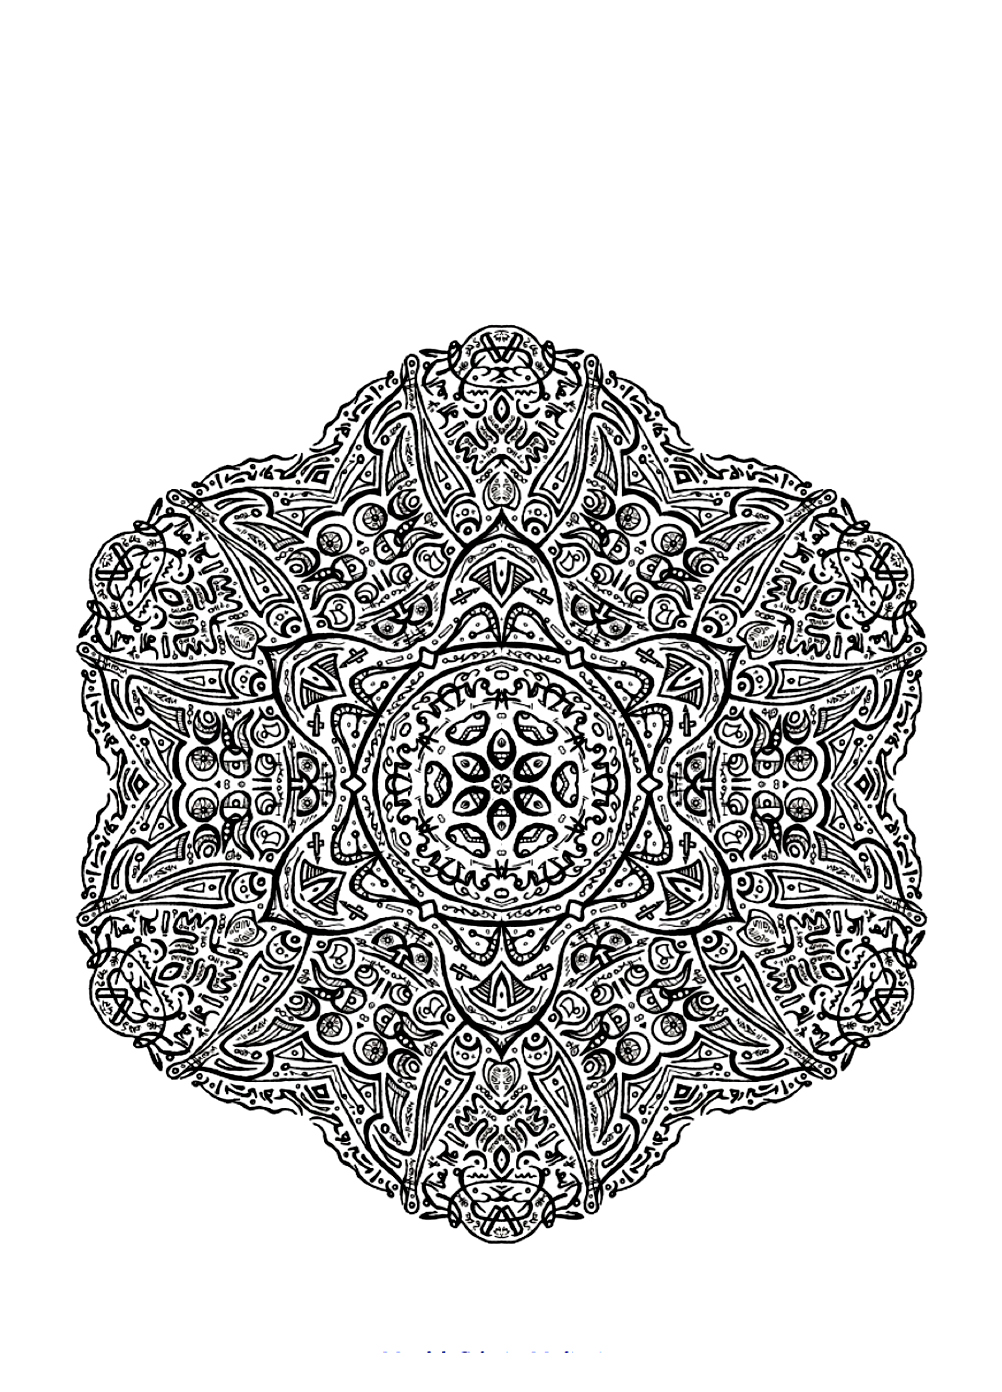 Lot of details insite this Mandala drawing forming a sort of flower